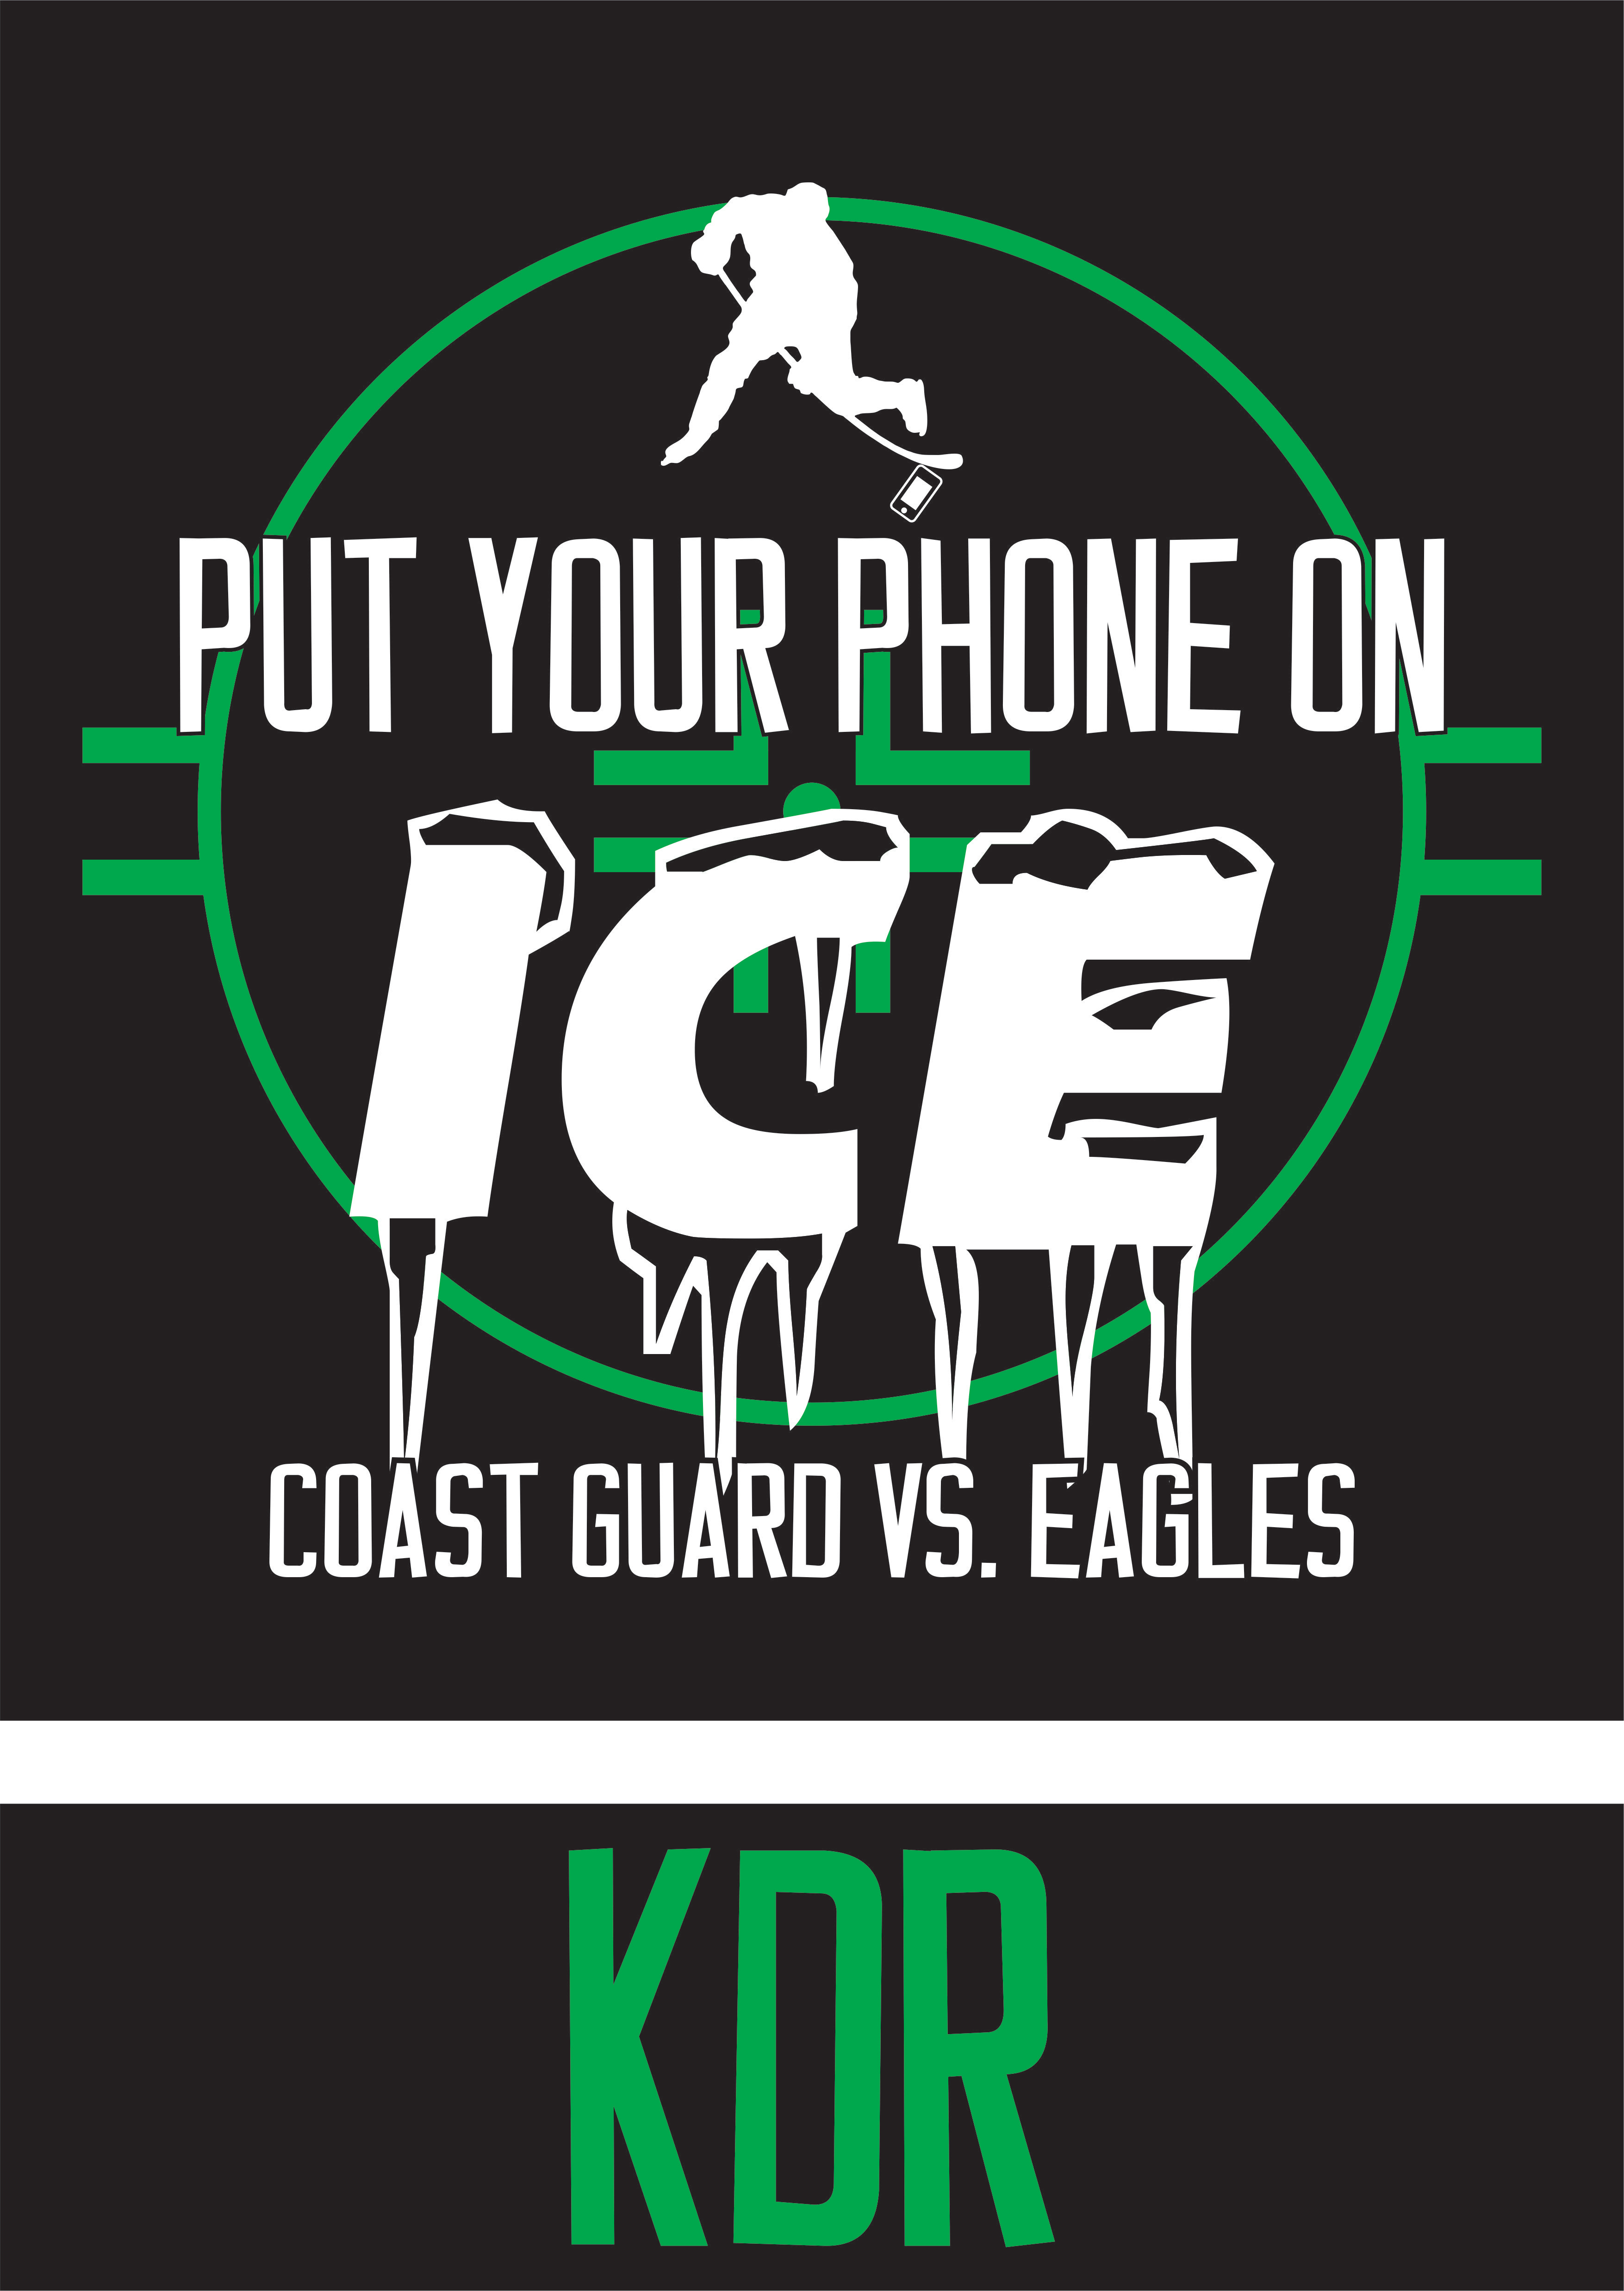 PUT YOUR PHONE ON ICE (3)